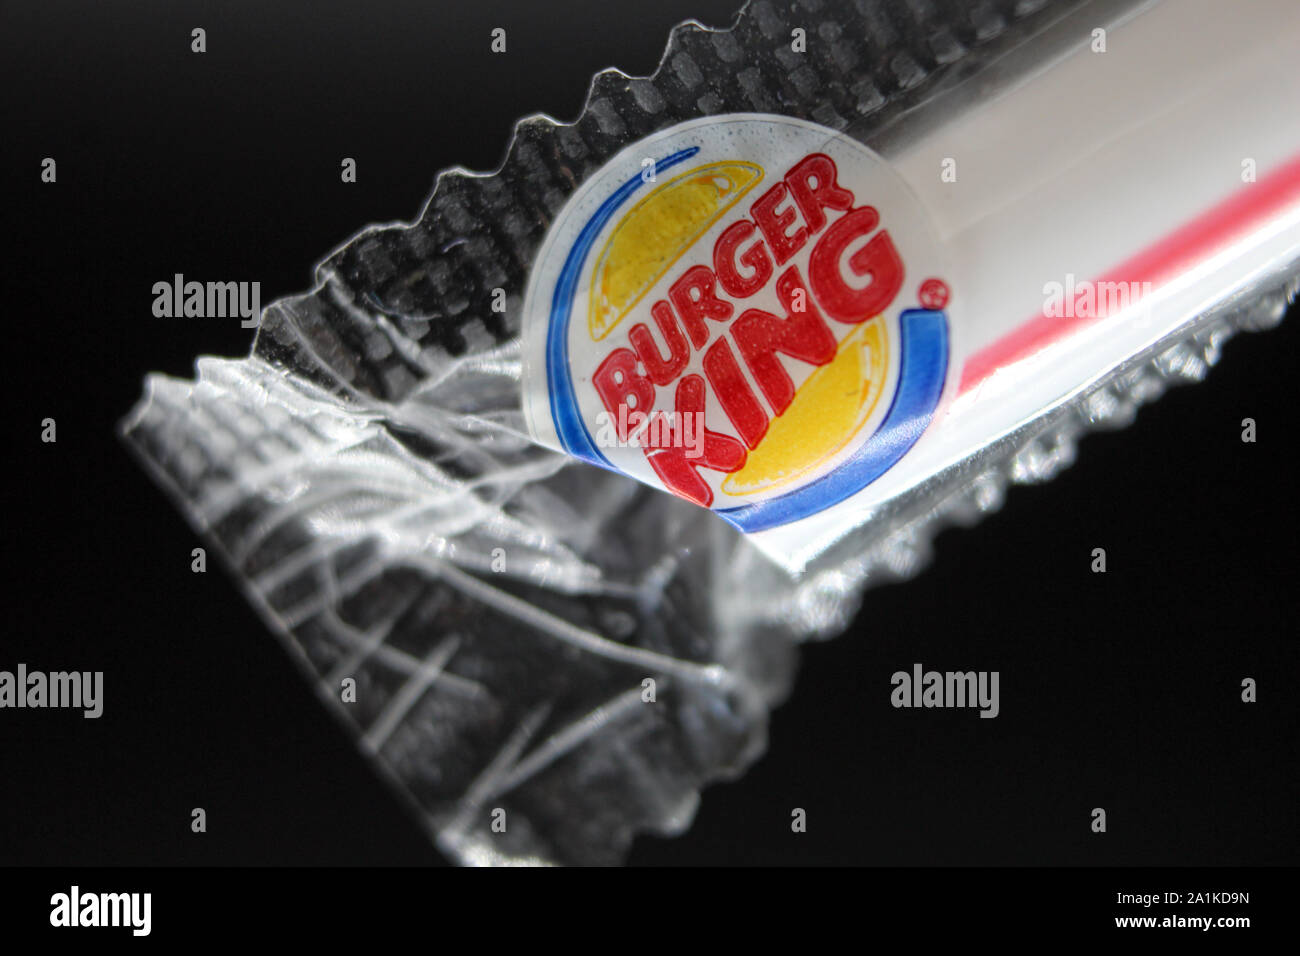 Plastic Straw Plastic Cellophane Wrapper From Burger King